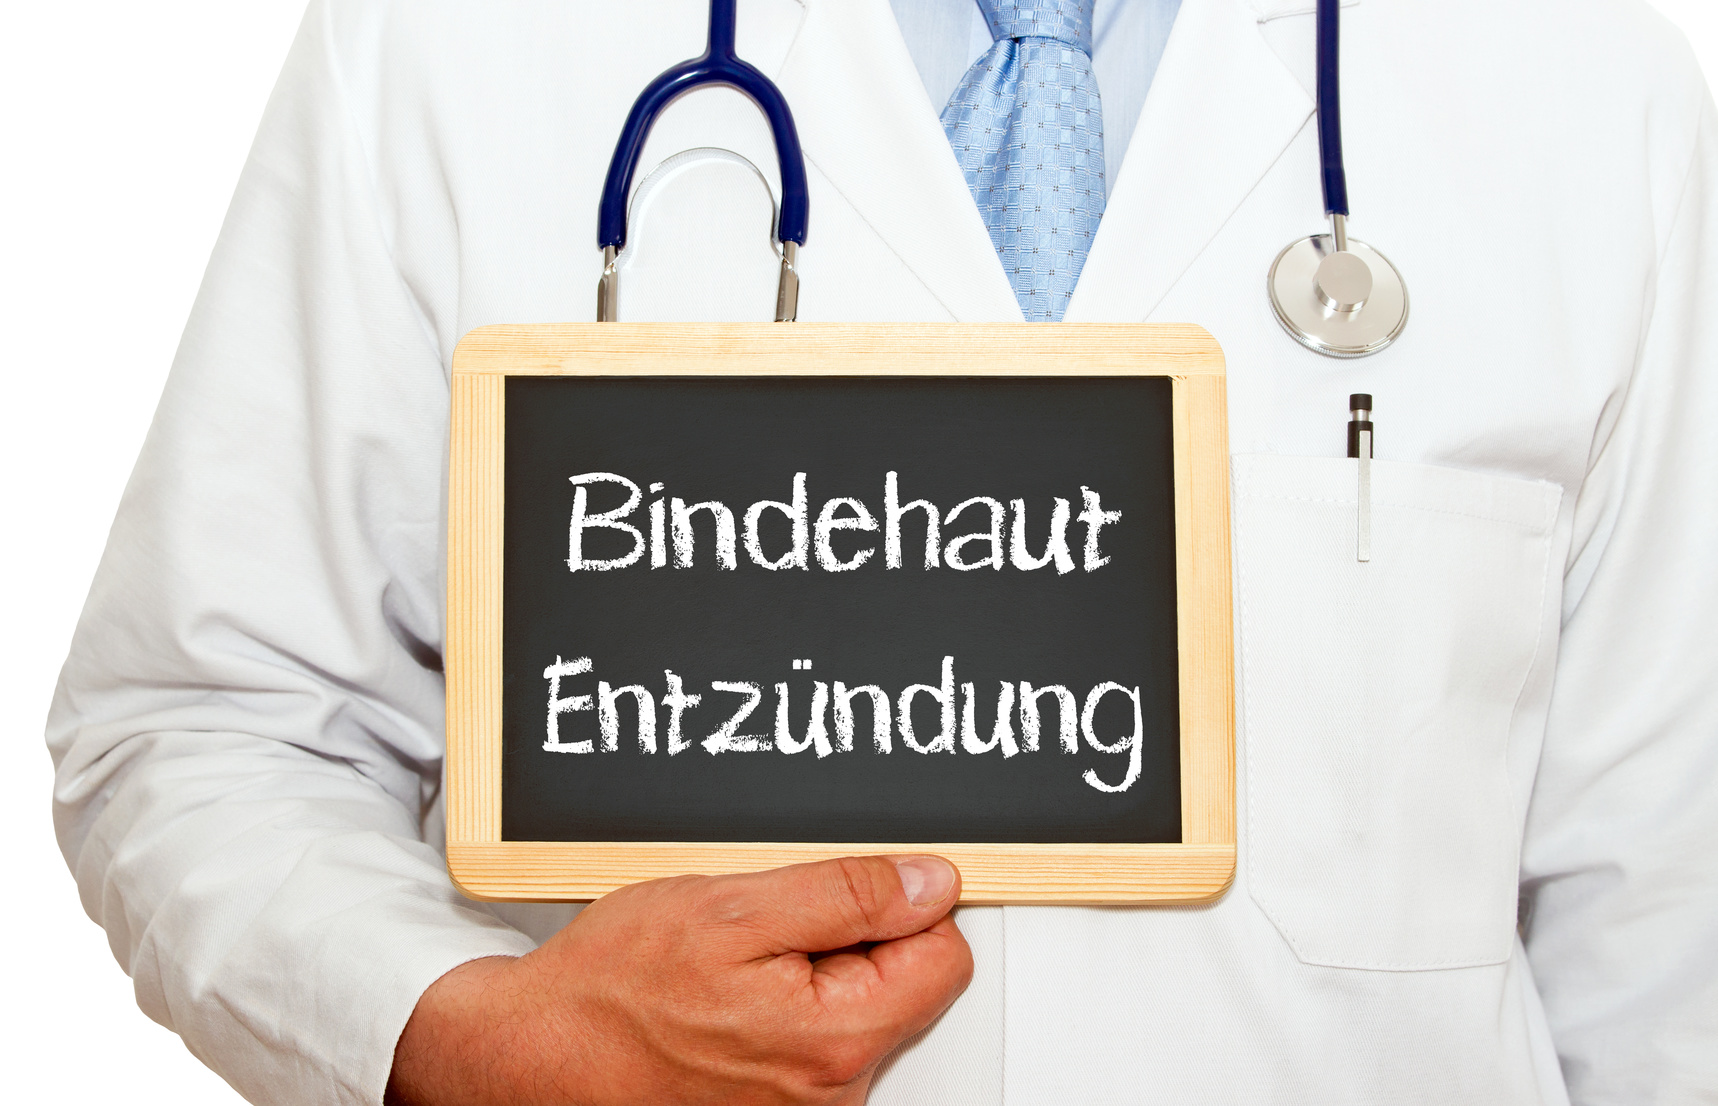 bindehautentzündung